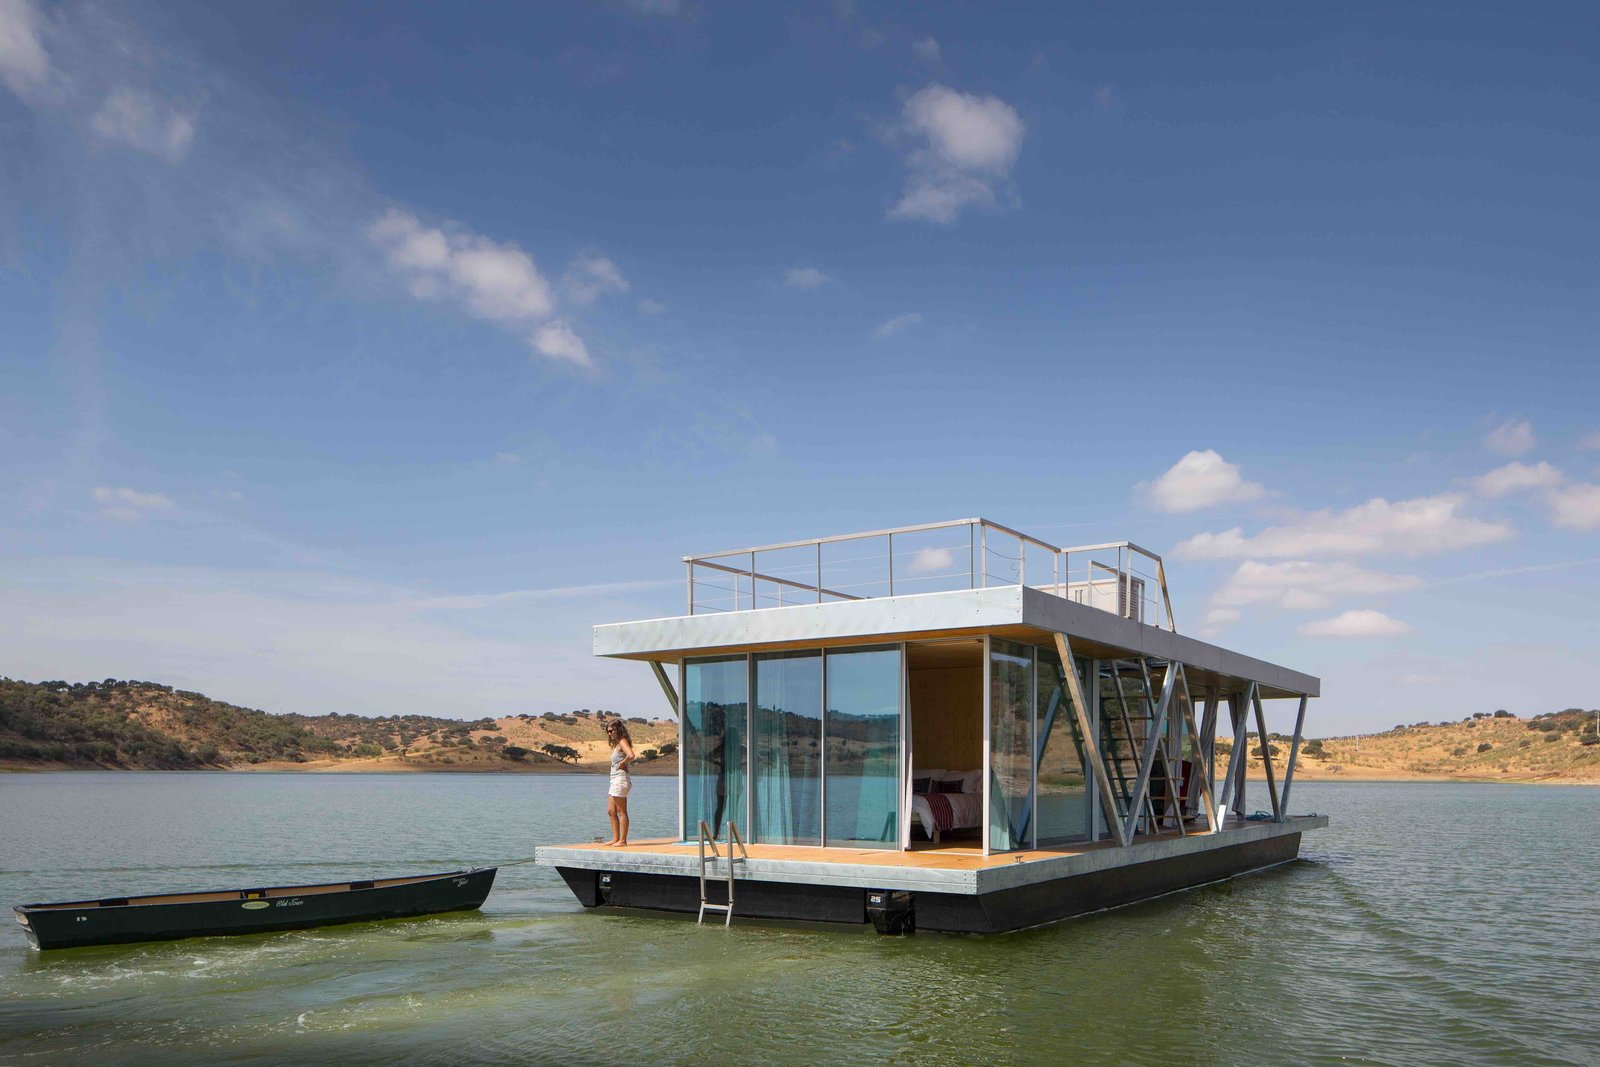 Photo 1 of 7 in 6 Modular Houseboat and Floating Home Manufacturers Around the World